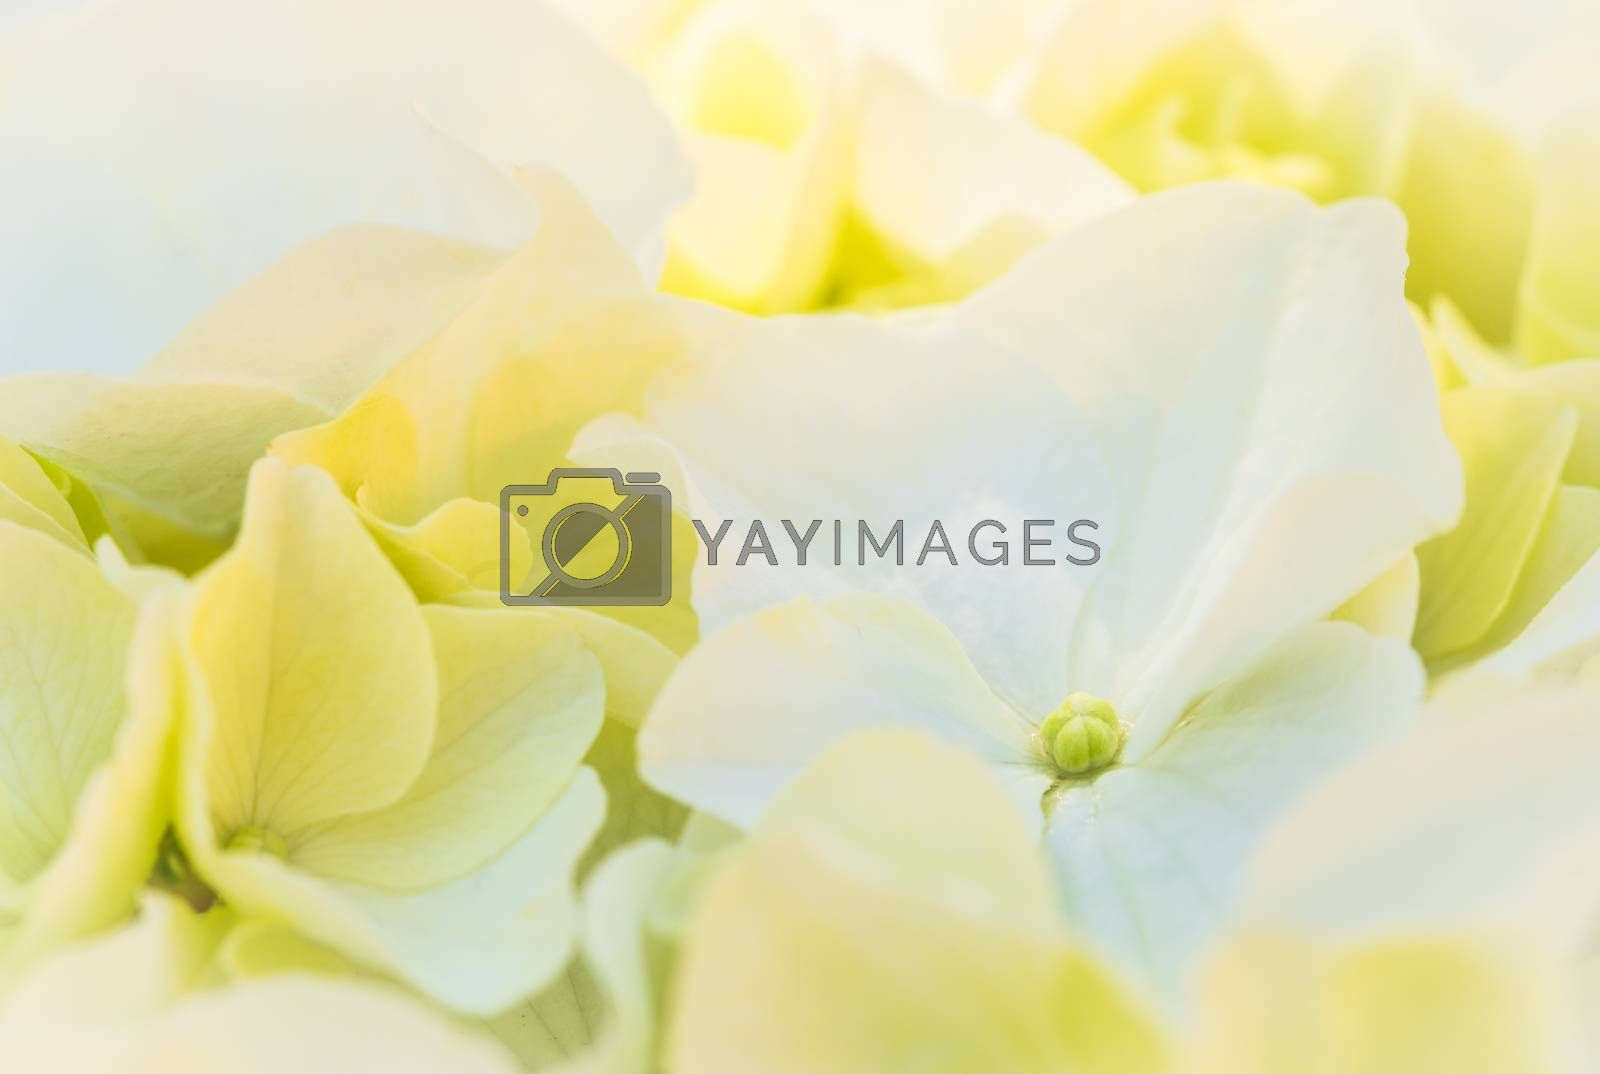 Flowers background with white hydrangea blossoms, closeup